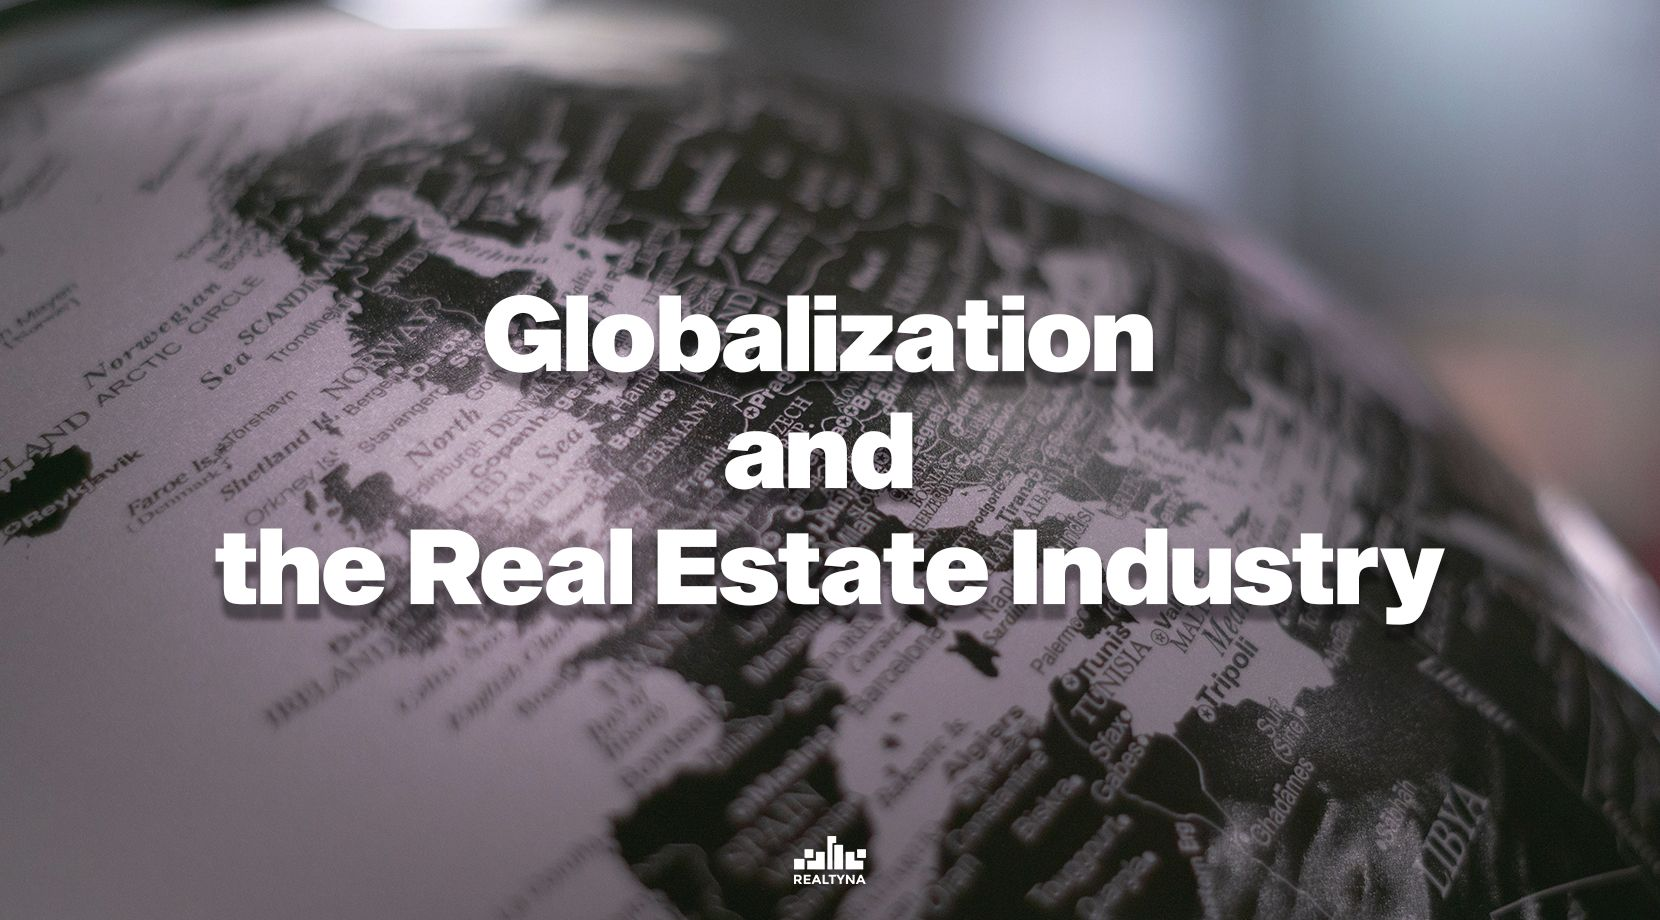 Globalization and the Real Estate Industry